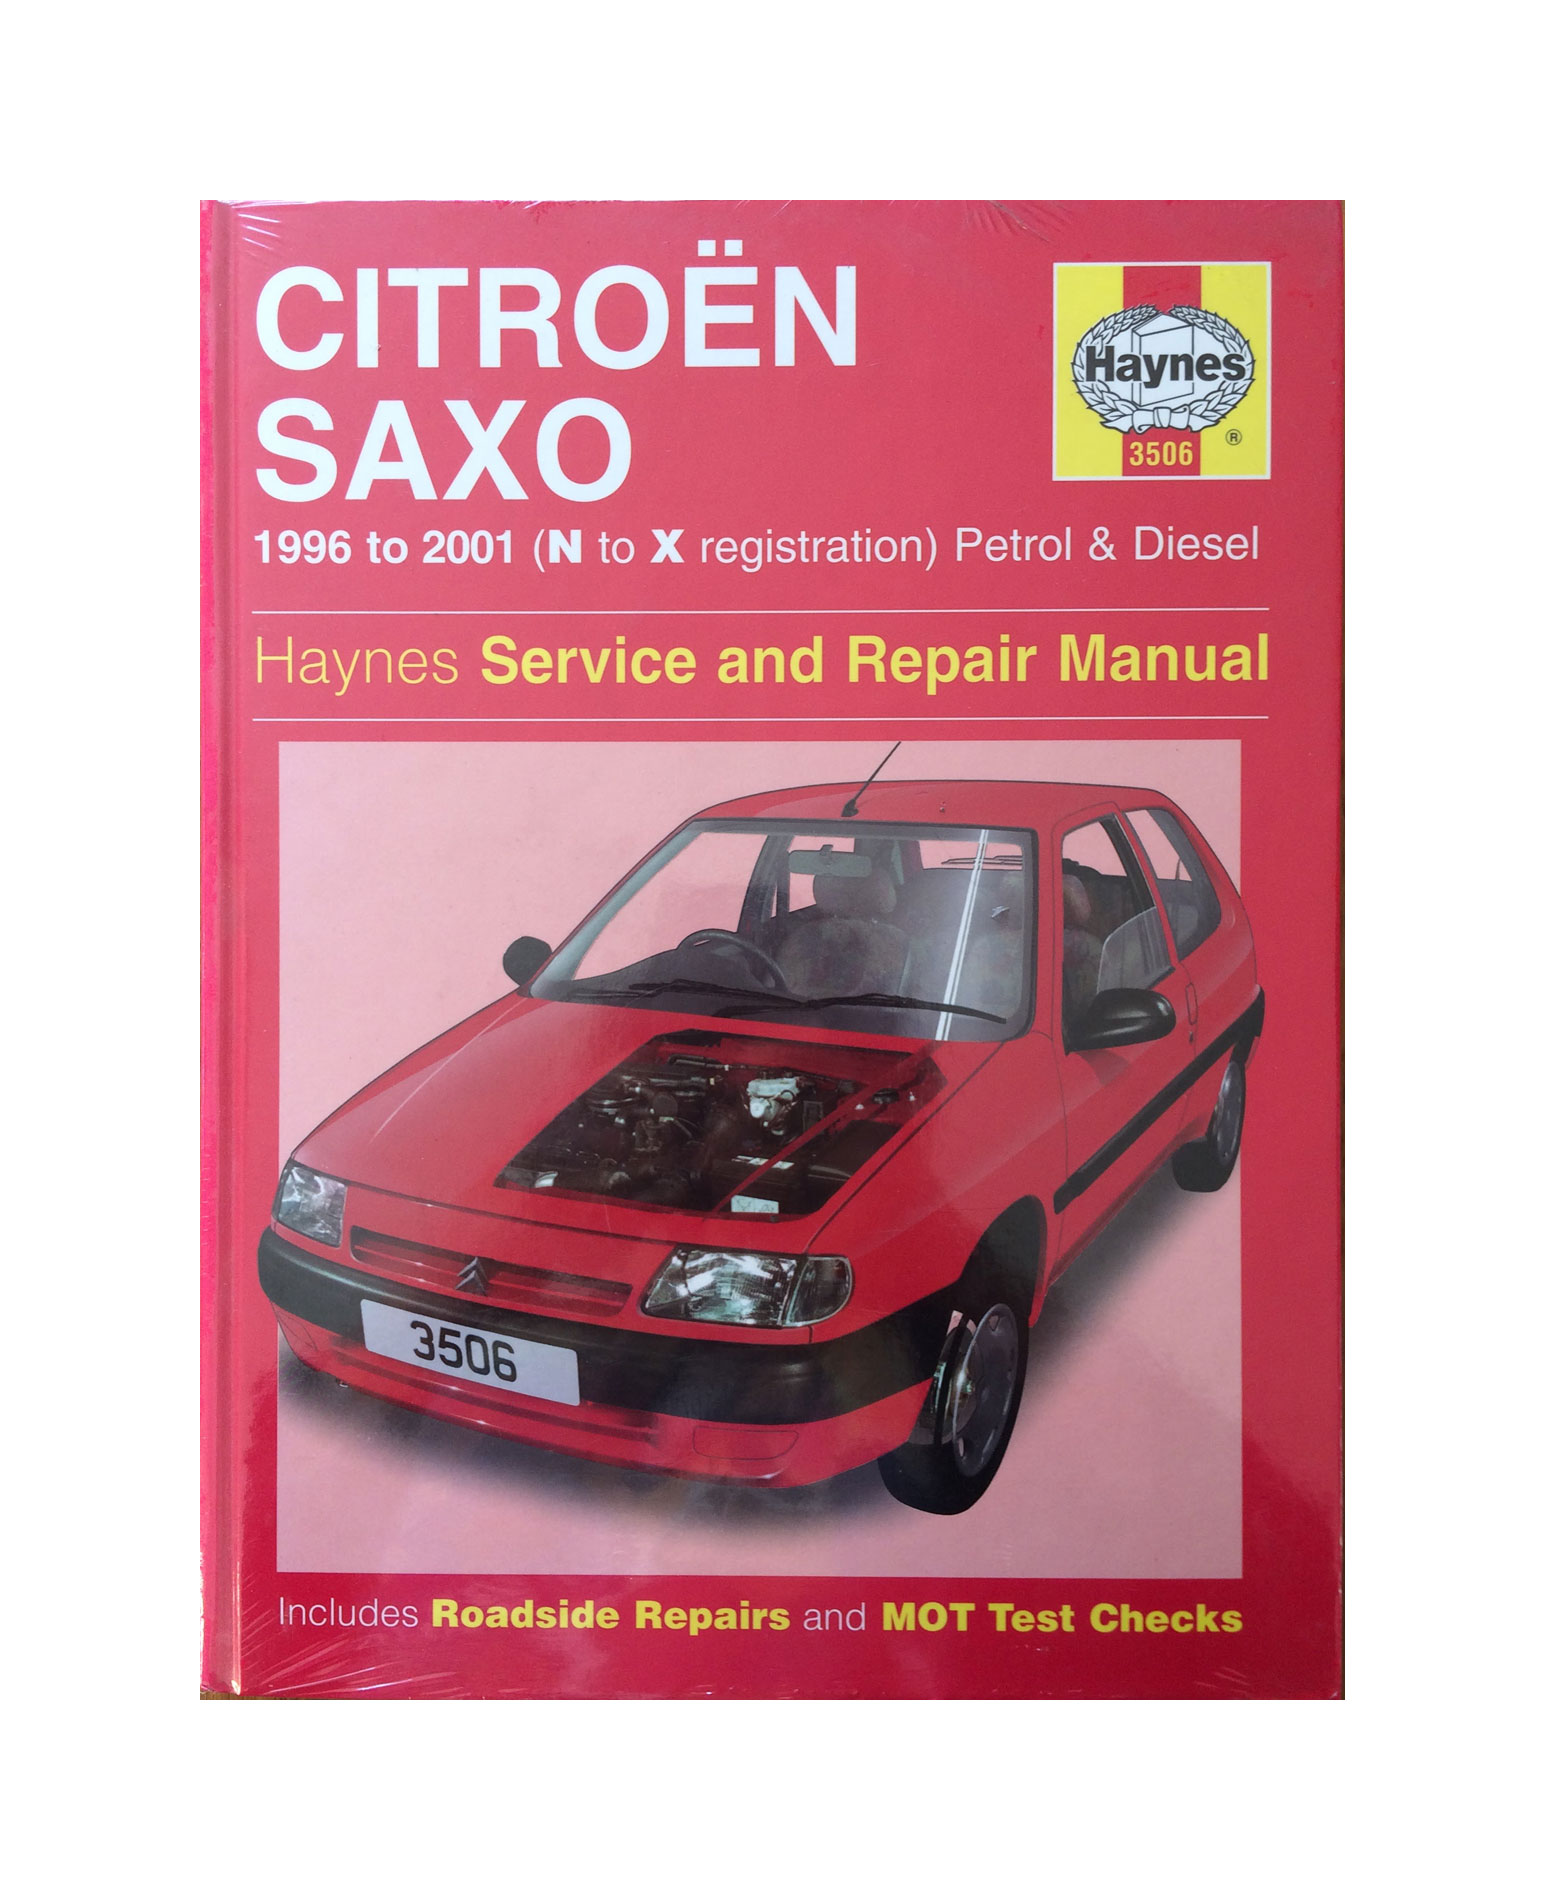 hight resolution of citroen saxo n x reg petrol diesel haynes service repair manual